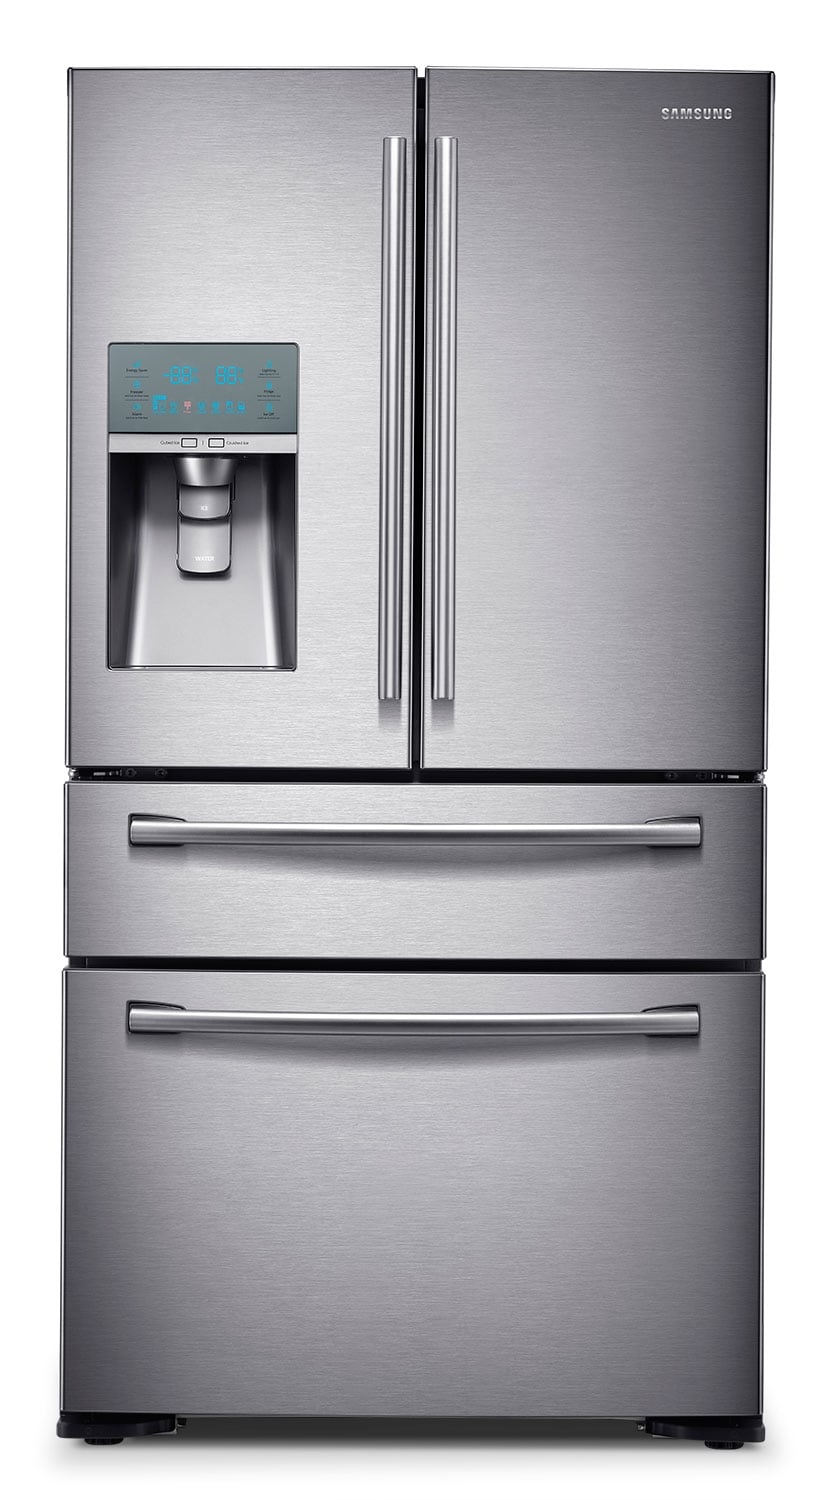 Refrigerators and Freezers - Samsung Stainless Steel French Door Refrigerator (23.6 Cu. Ft.) - RF24FSEDBSR